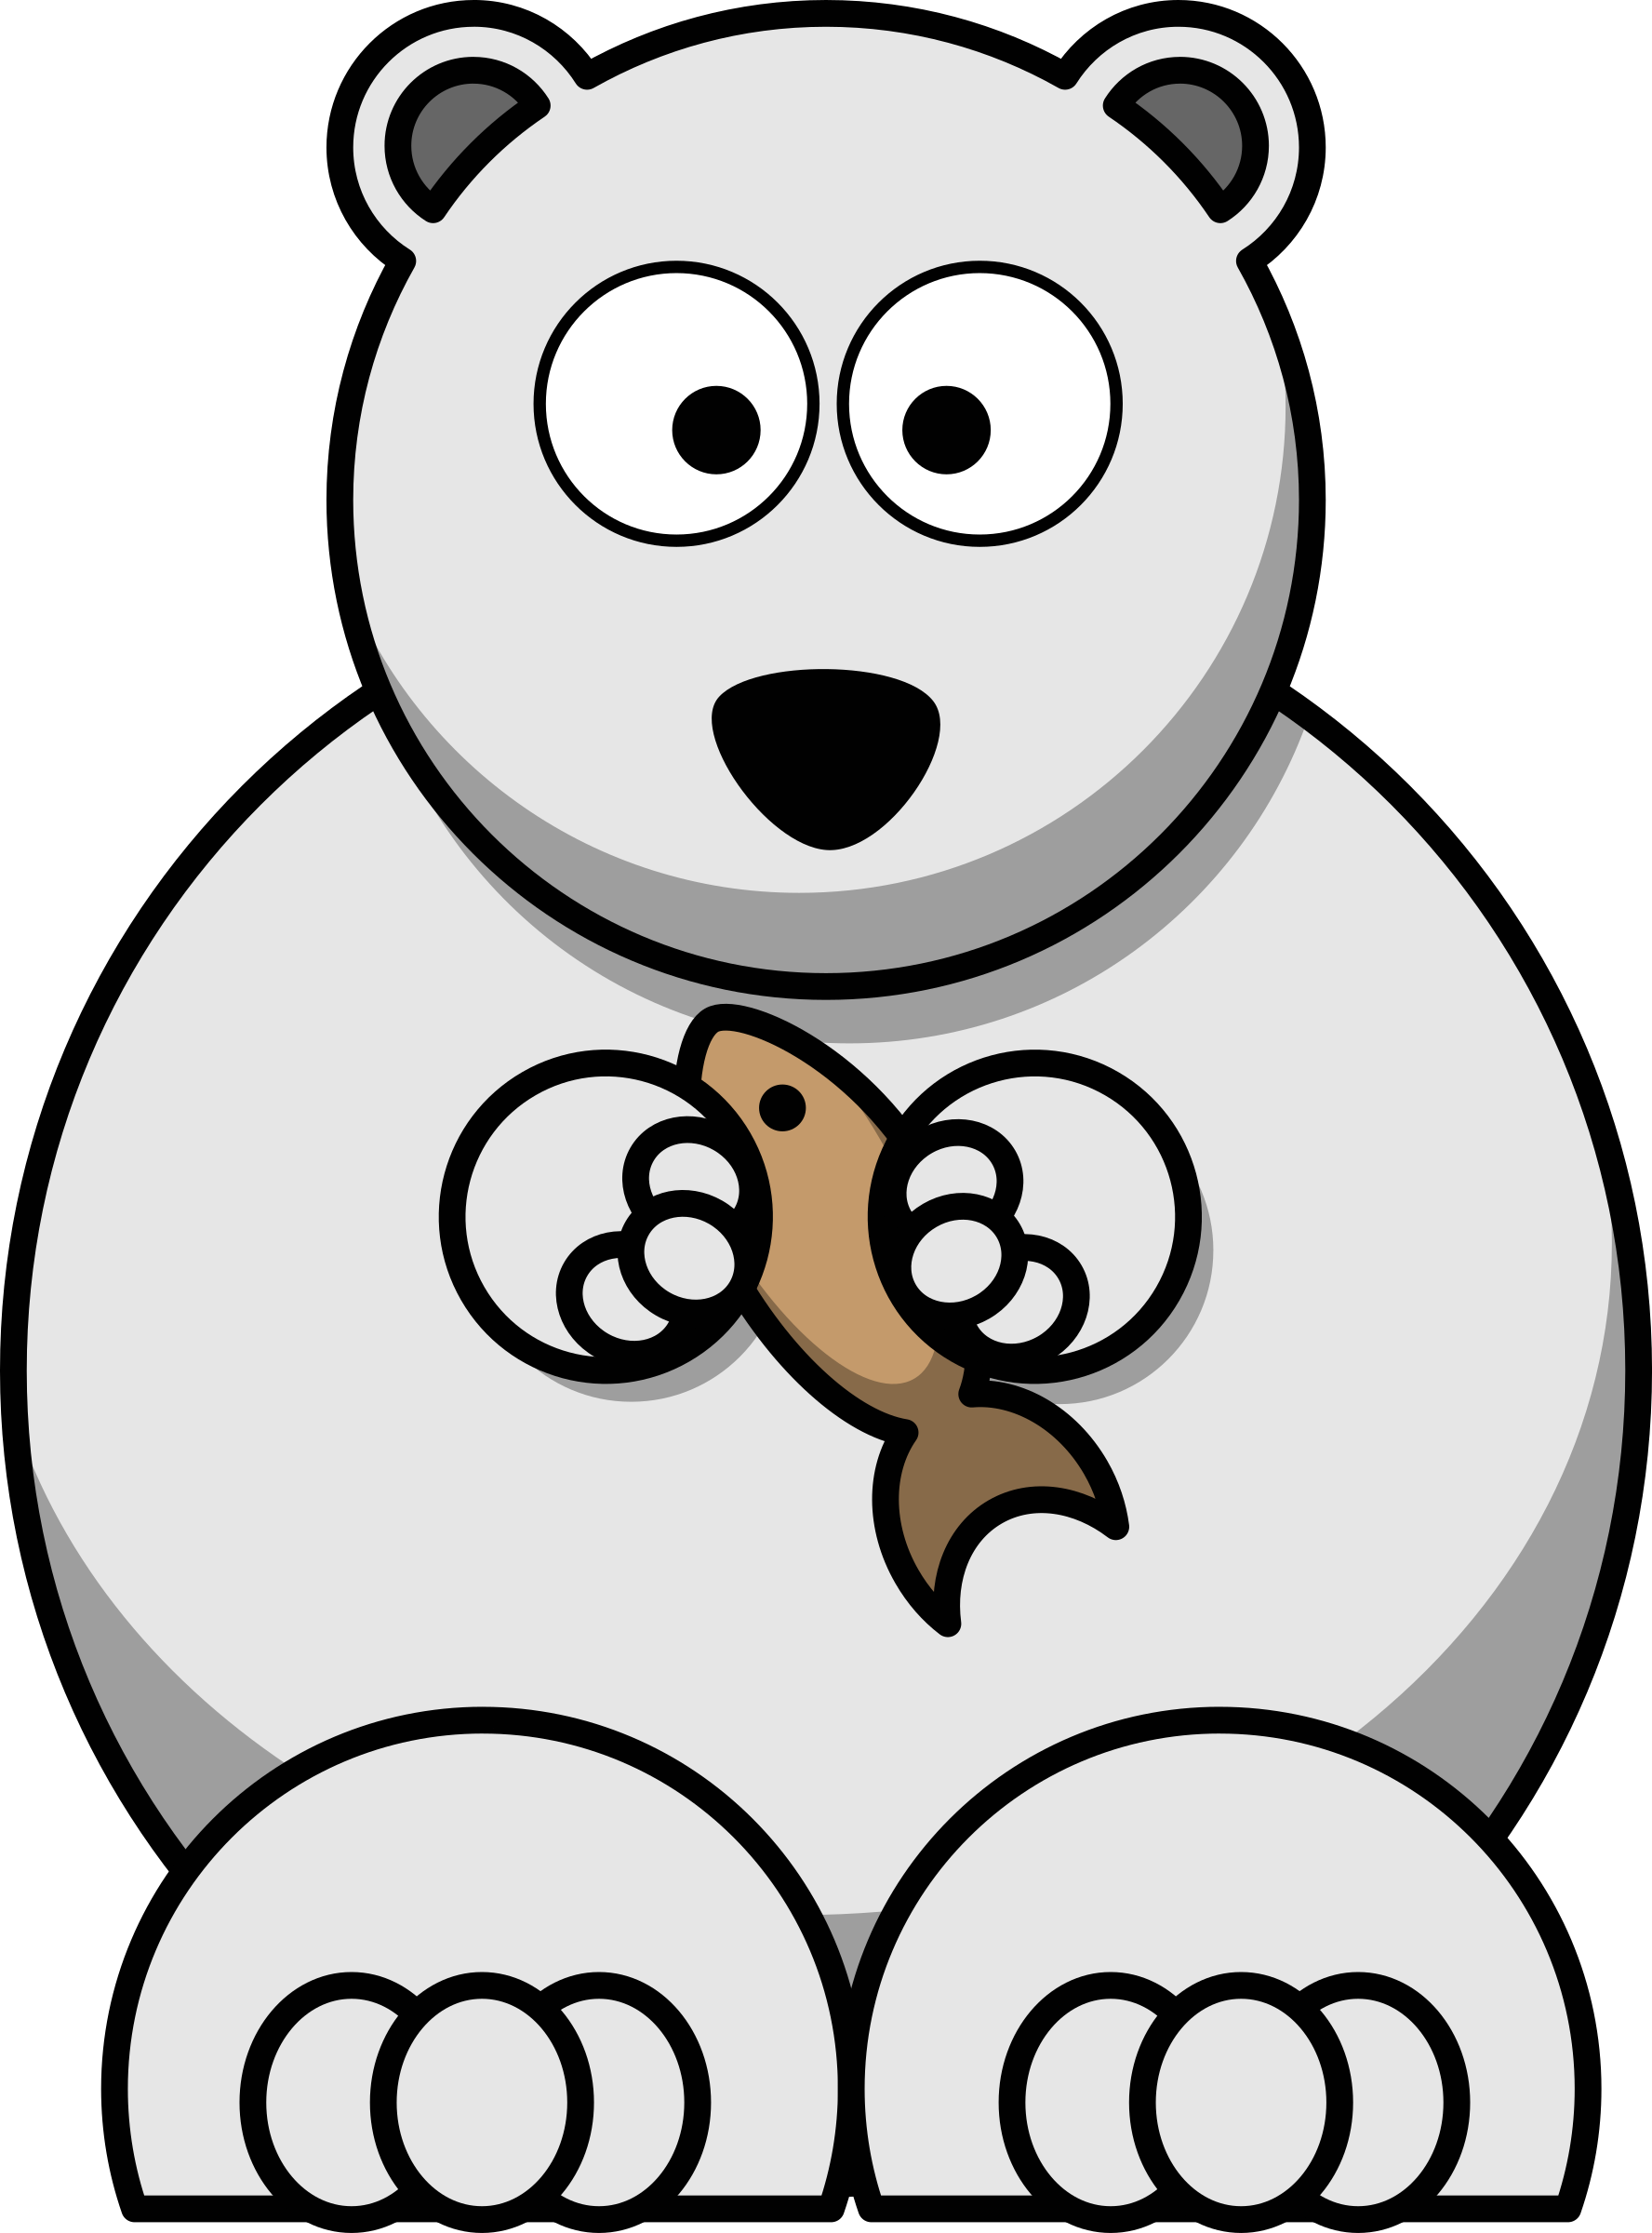 Bear clipart polar bear. Cartoon big image png